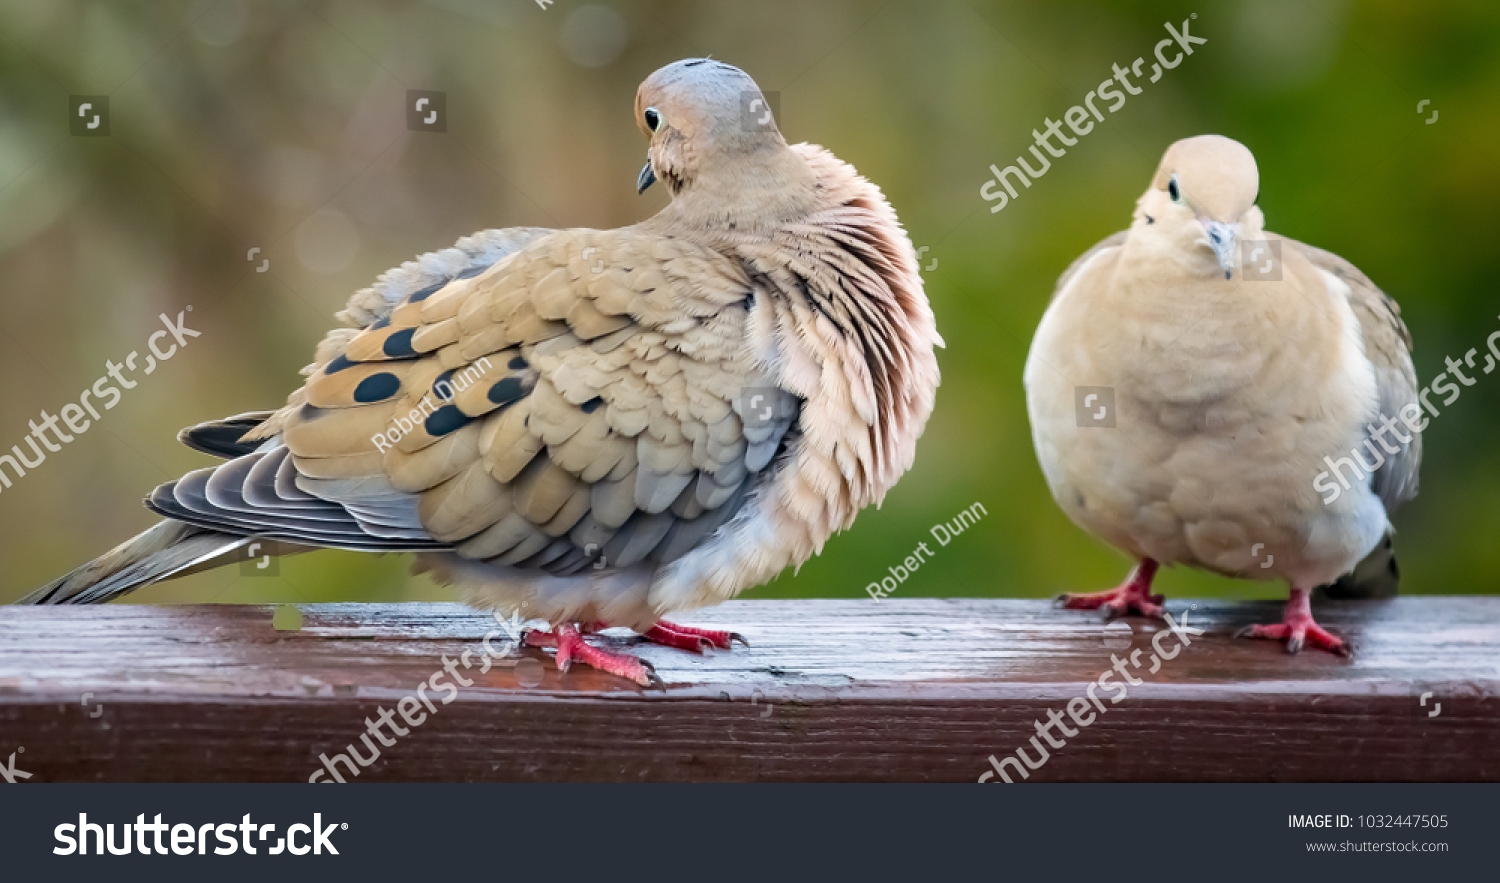 2 doves symbolism image collections symbol and sign ideas 2 doves symbolism image collections symbol and sign ideas 2 doves symbolism gallery symbol and sign biocorpaavc